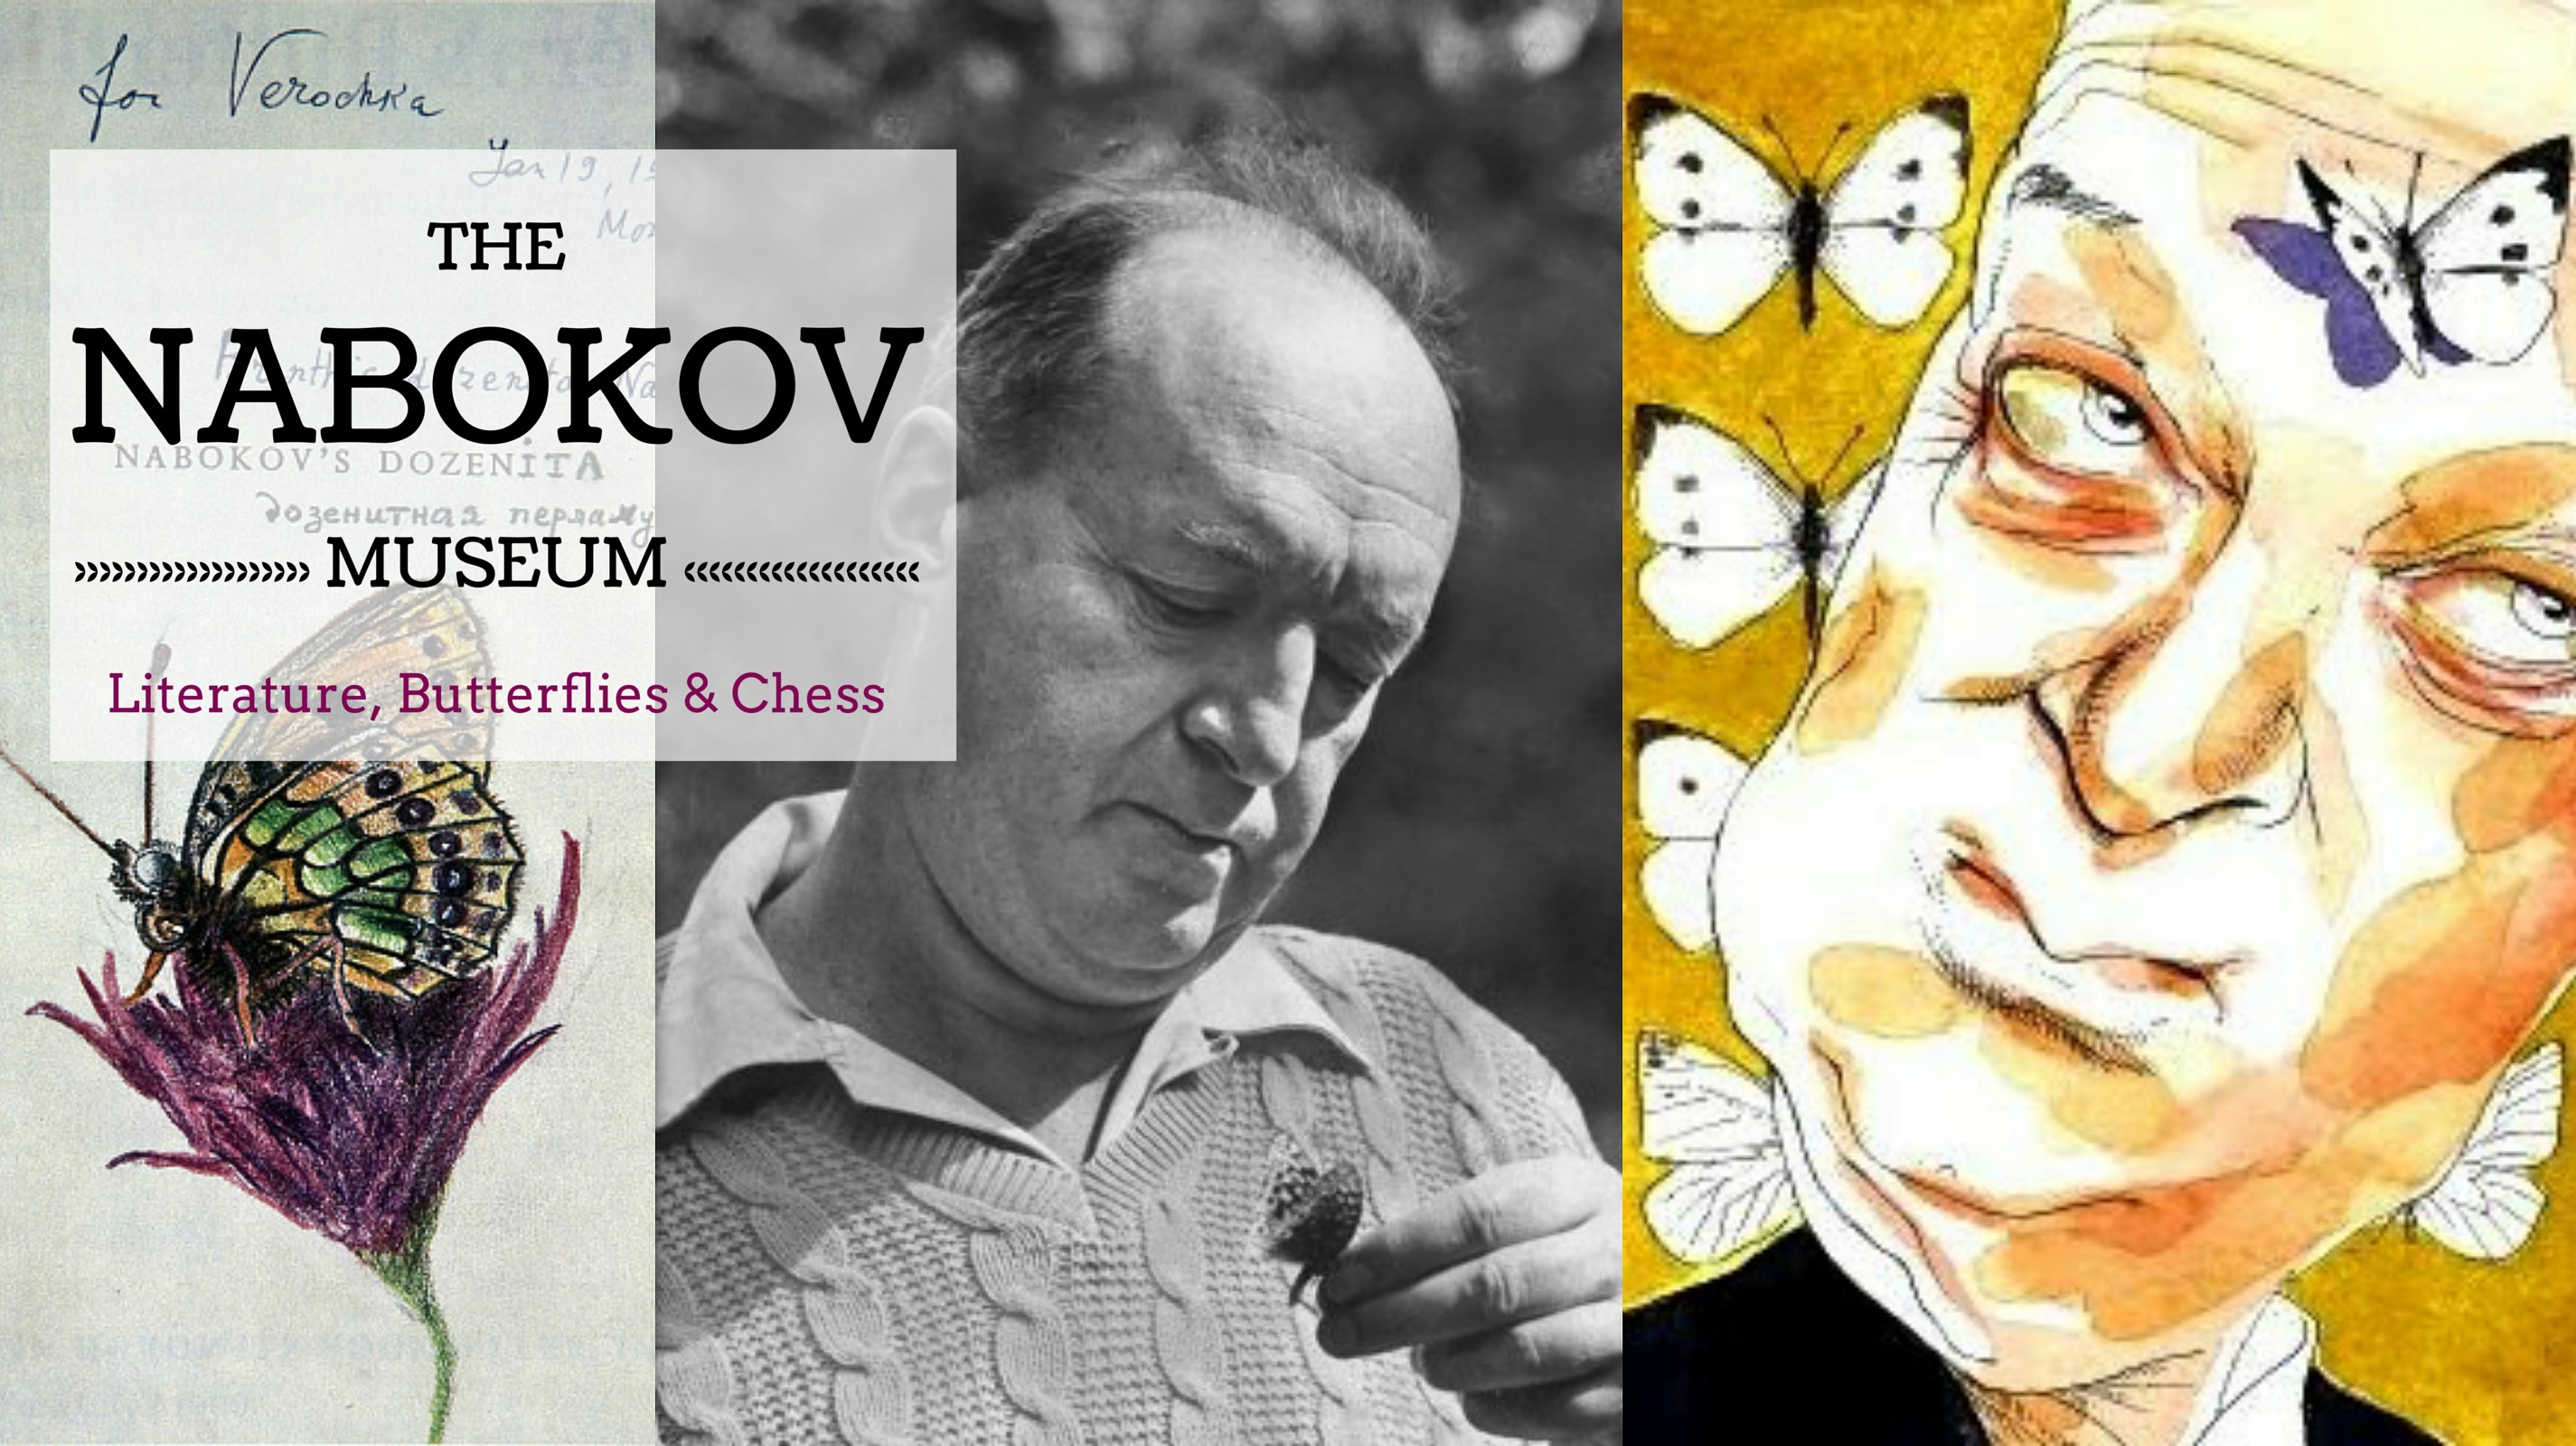 Nabokov Museum, Butterfly